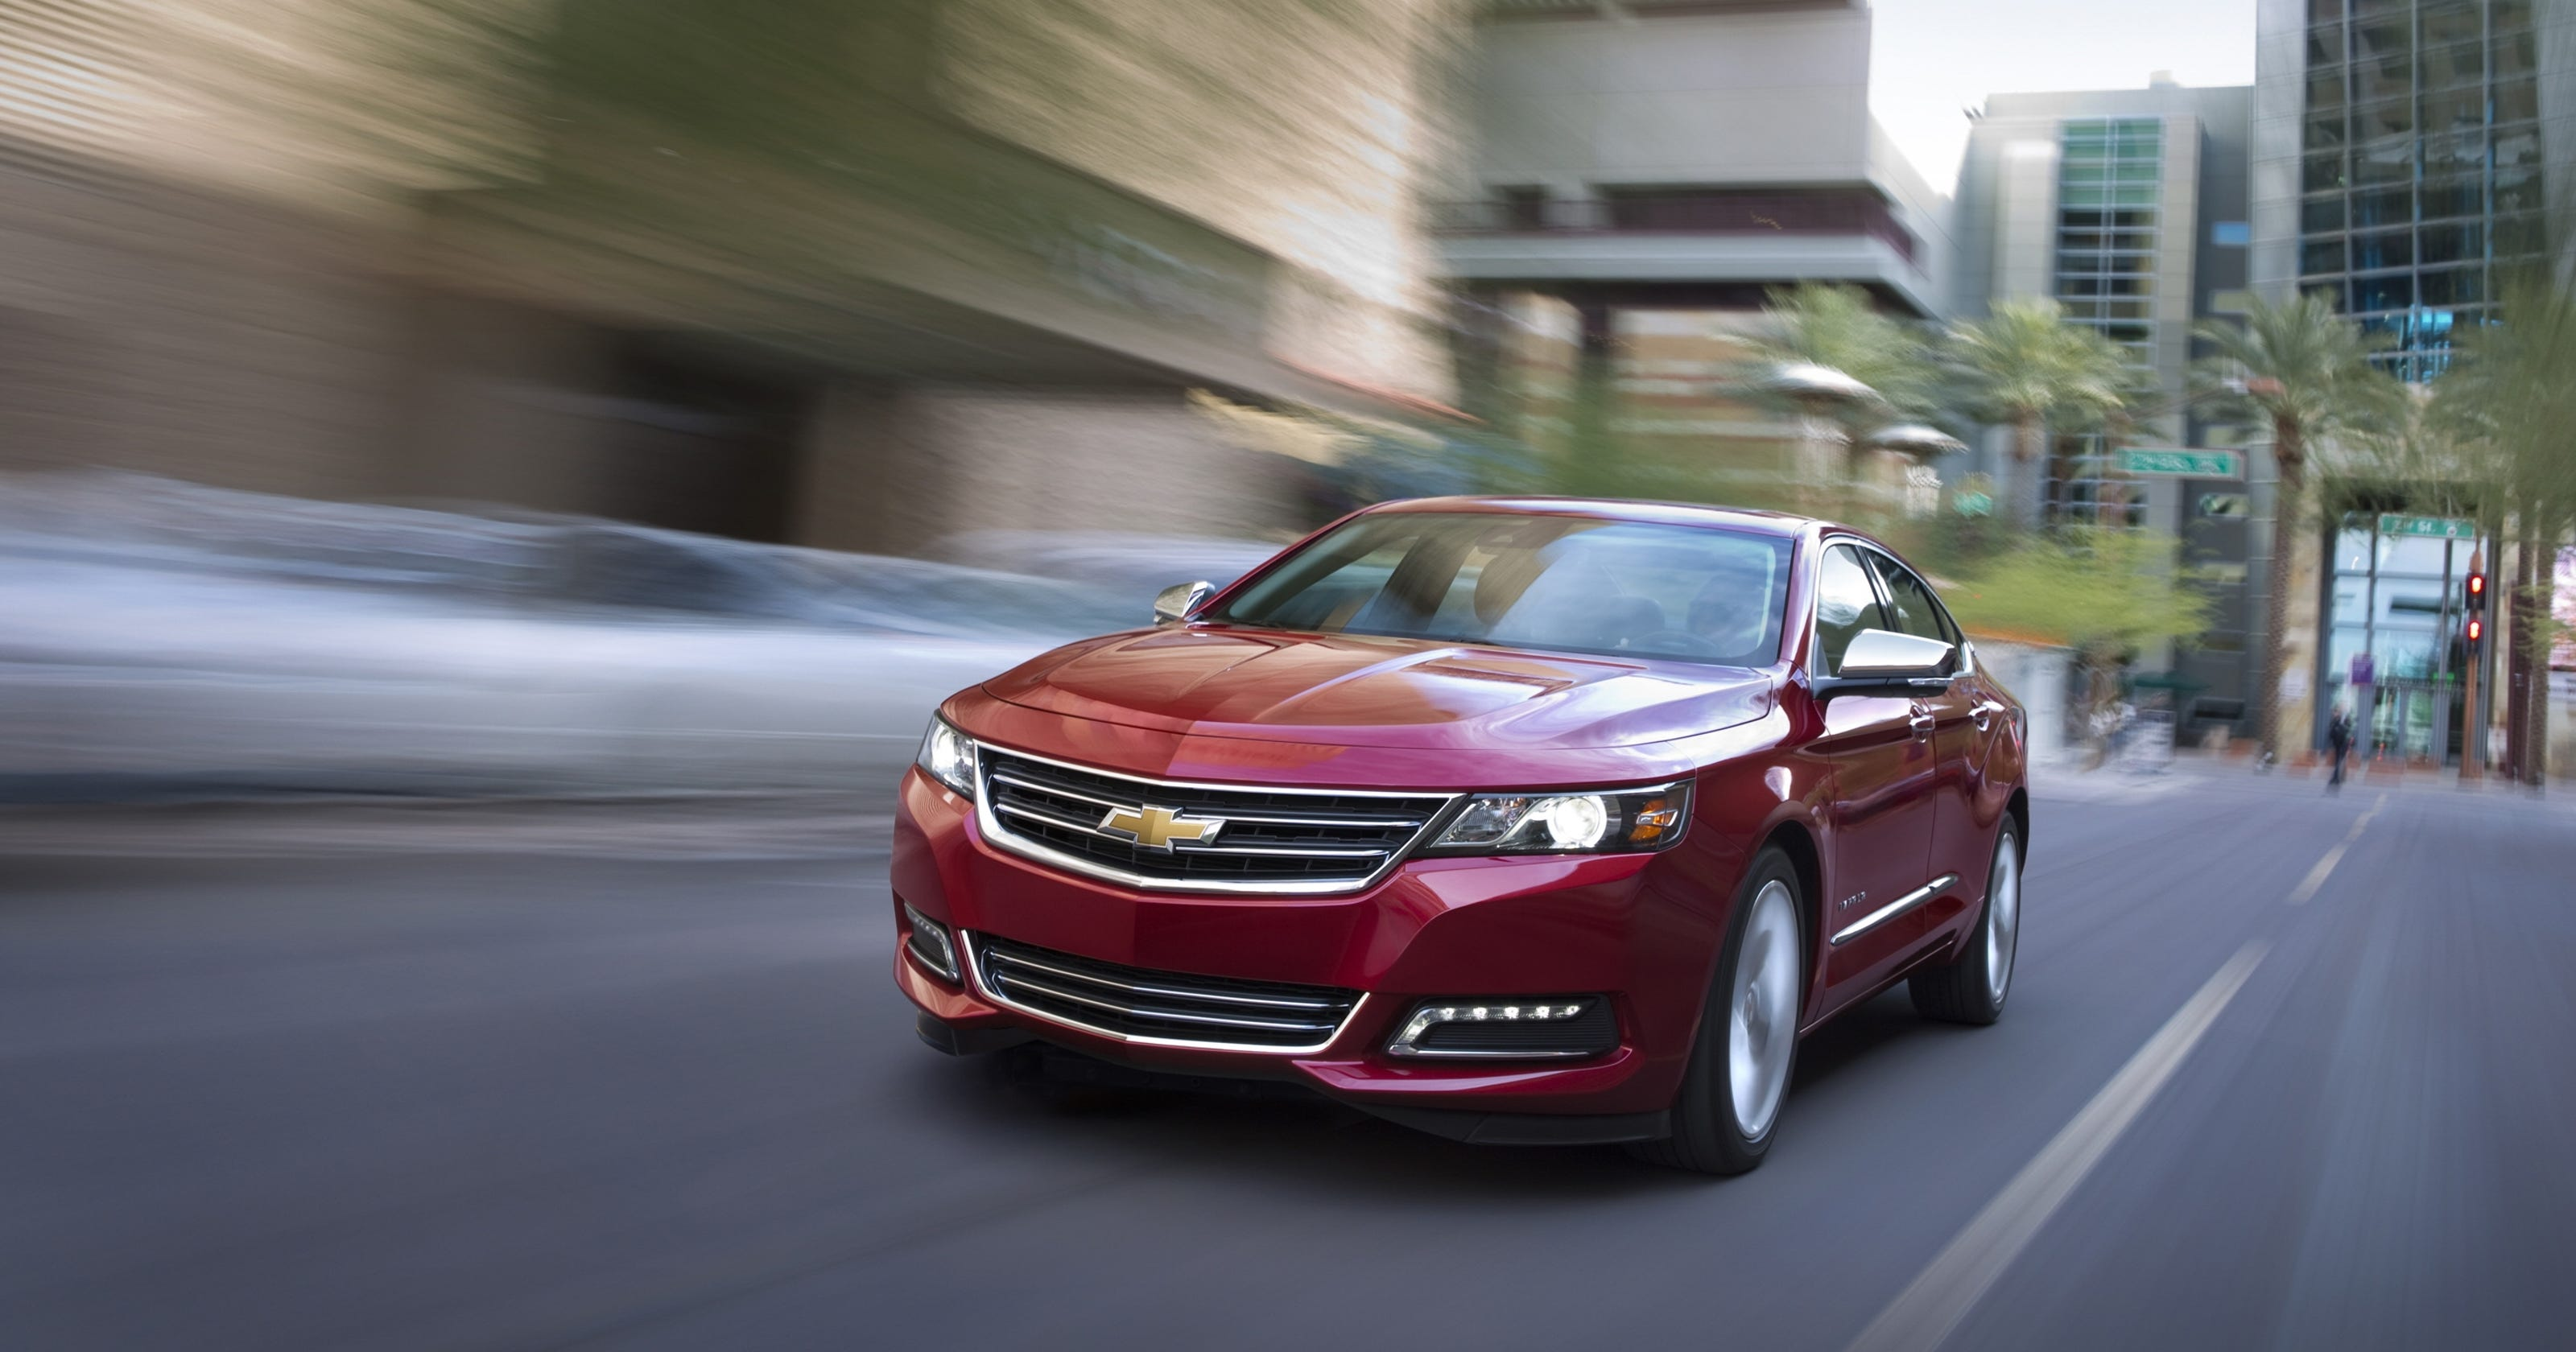 Test Drive disagrees: Slick Chevrolet Impala has hiccups